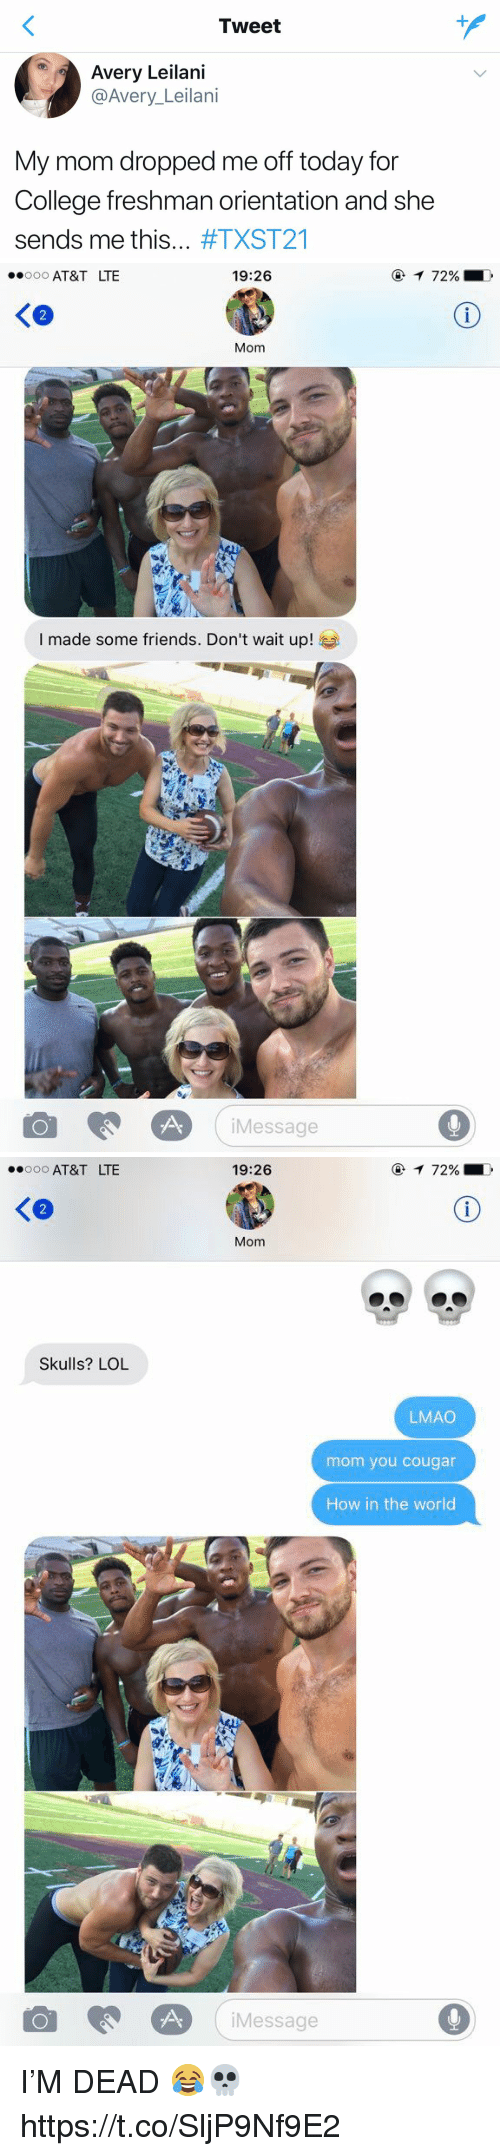 College, Friends, and Lmao: Tweet  Avery Leilani  @Avery Leilani  My mom dropped me off today for  College freshman orientation and she  sends me this  #TXST21   19:26  ooooo AT&T LTE  Mom  I made some friends. Don't wait up!  Message  72%   ooooo AT&T LTE  Skulls? LOL  19:26  72%  Mom  LMAO  mom you cougar  How in the world  Message I'M  DEAD 😂💀 https://t.co/SljP9Nf9E2